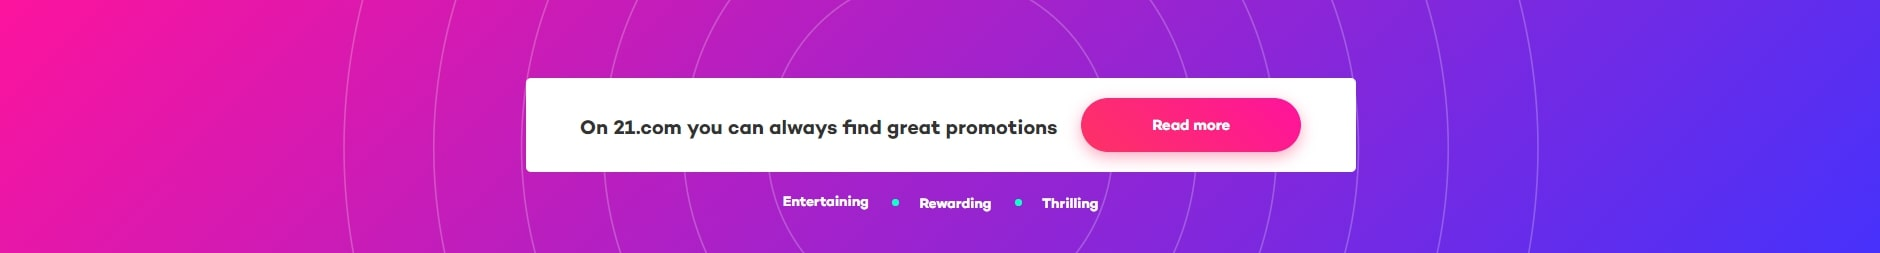 21.com always have great promotions